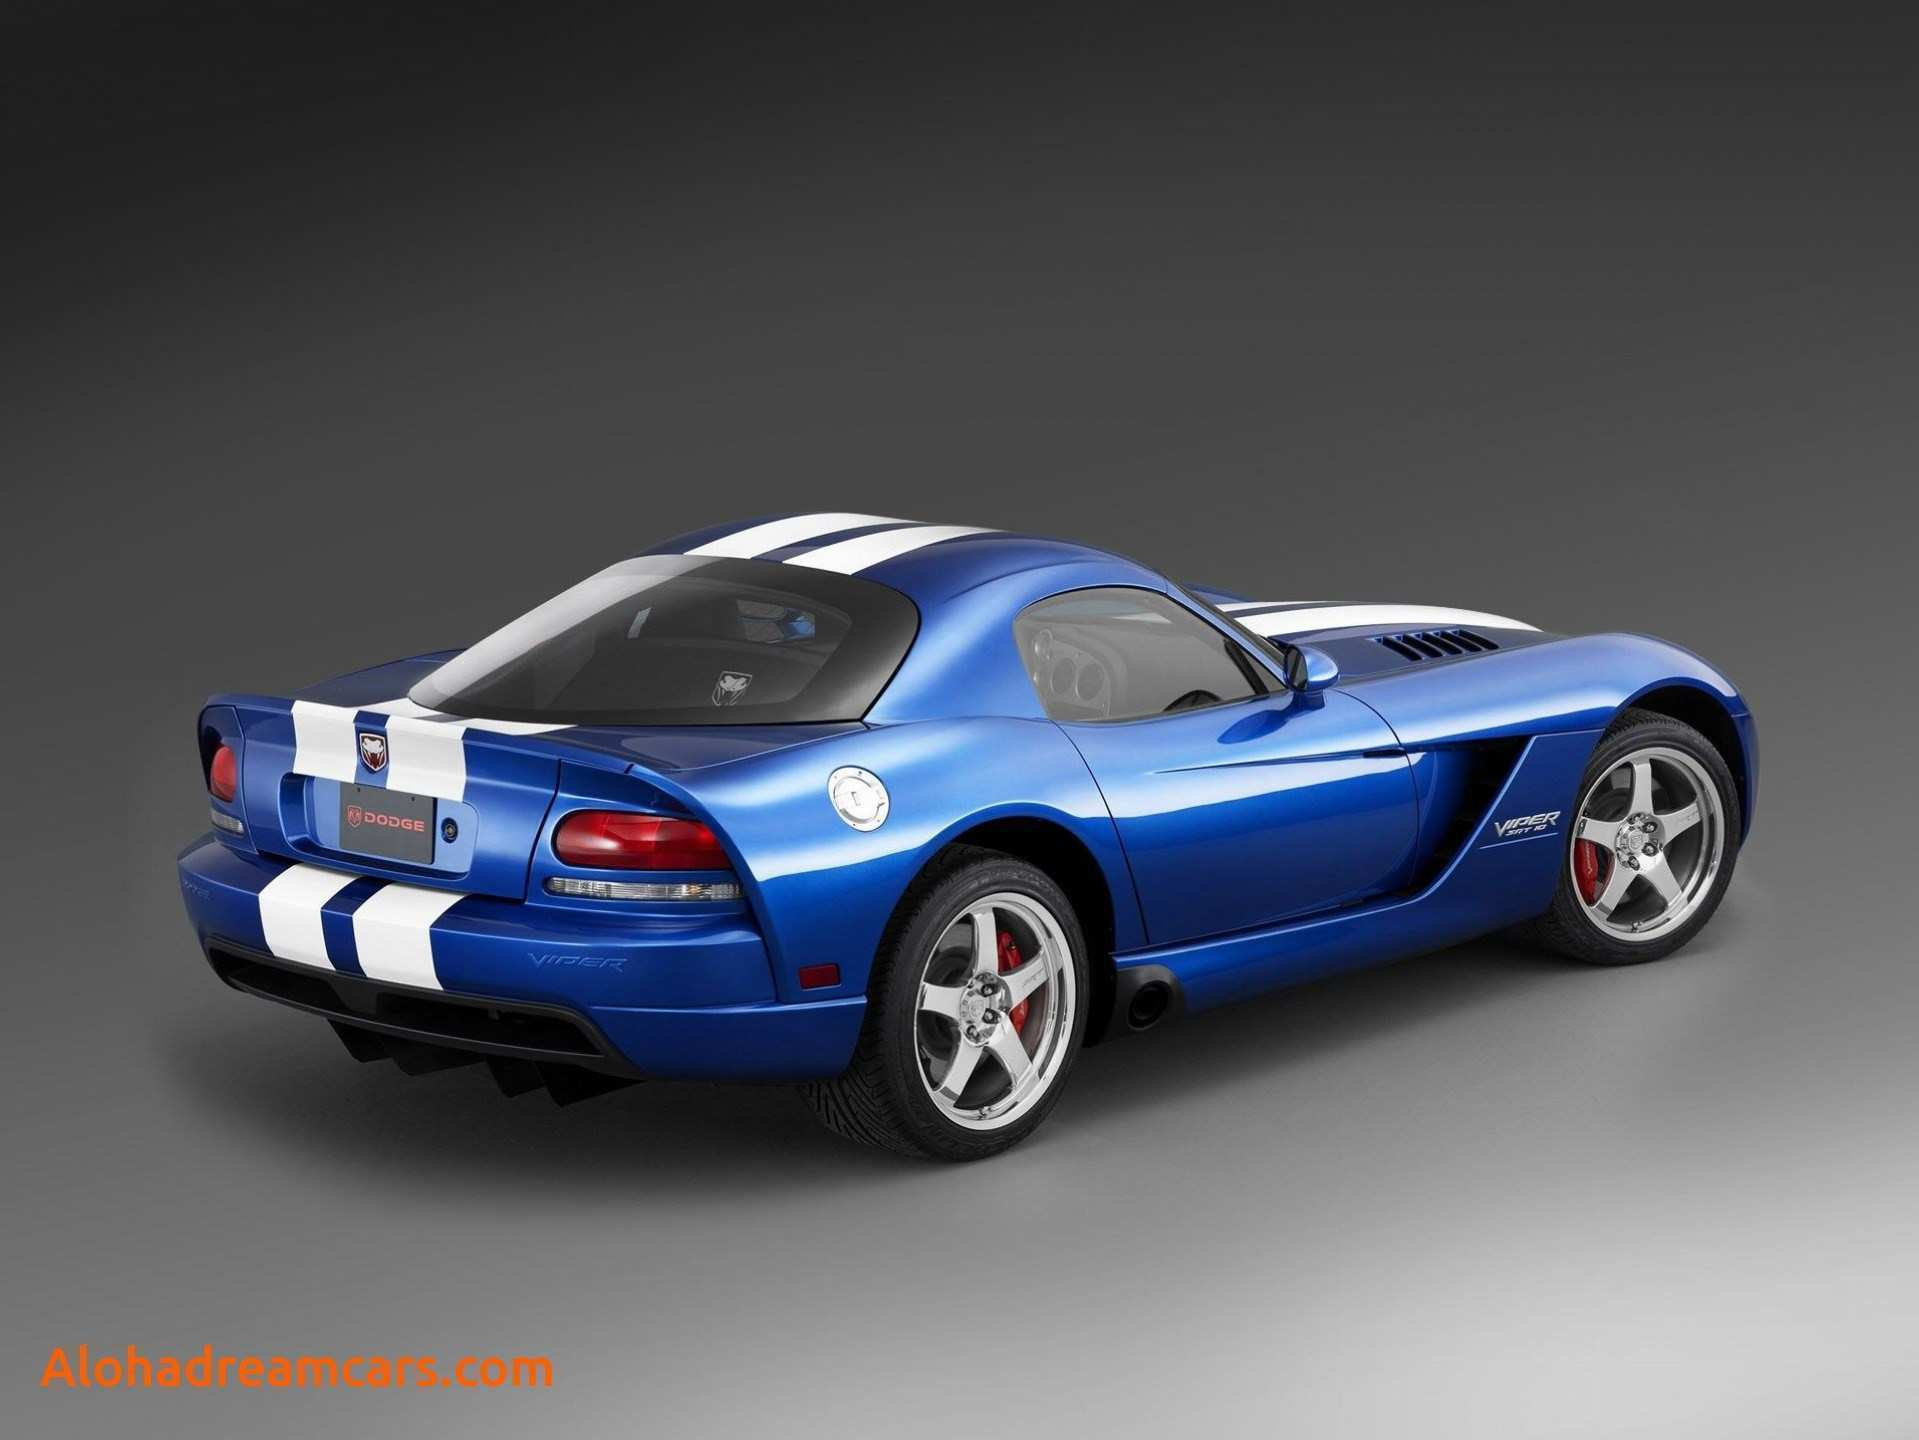 78 A 2020 Dodge Viper Roadster Review And Release Date